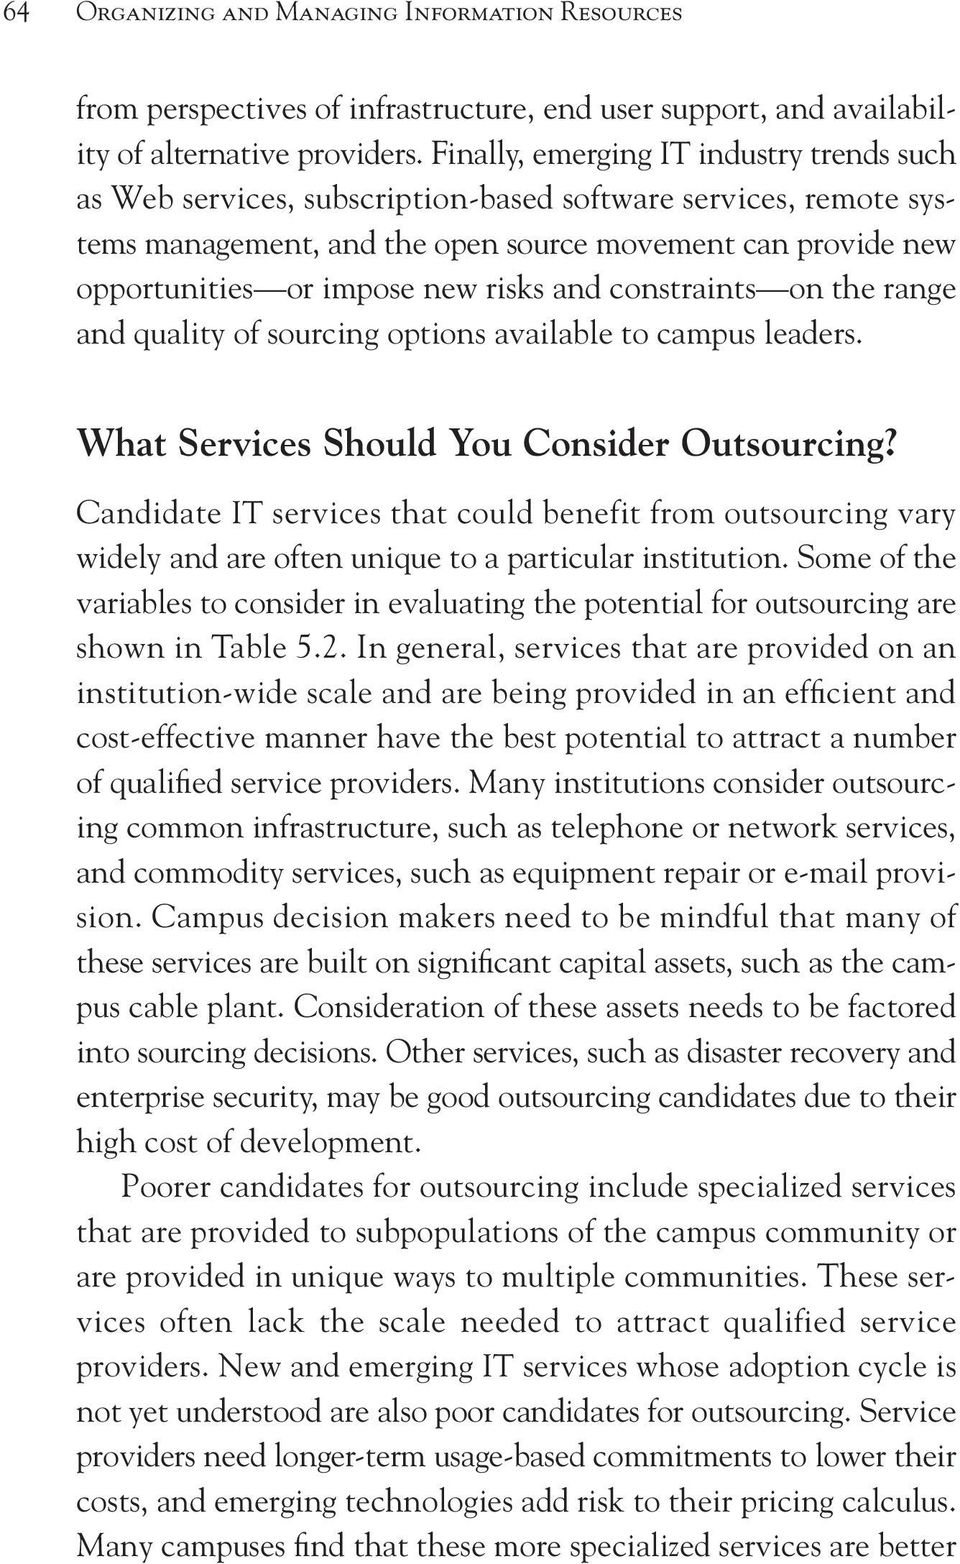 risks and constraints on the range and quality of sourcing options available to campus leaders. What Services Should You Consider Outsourcing?